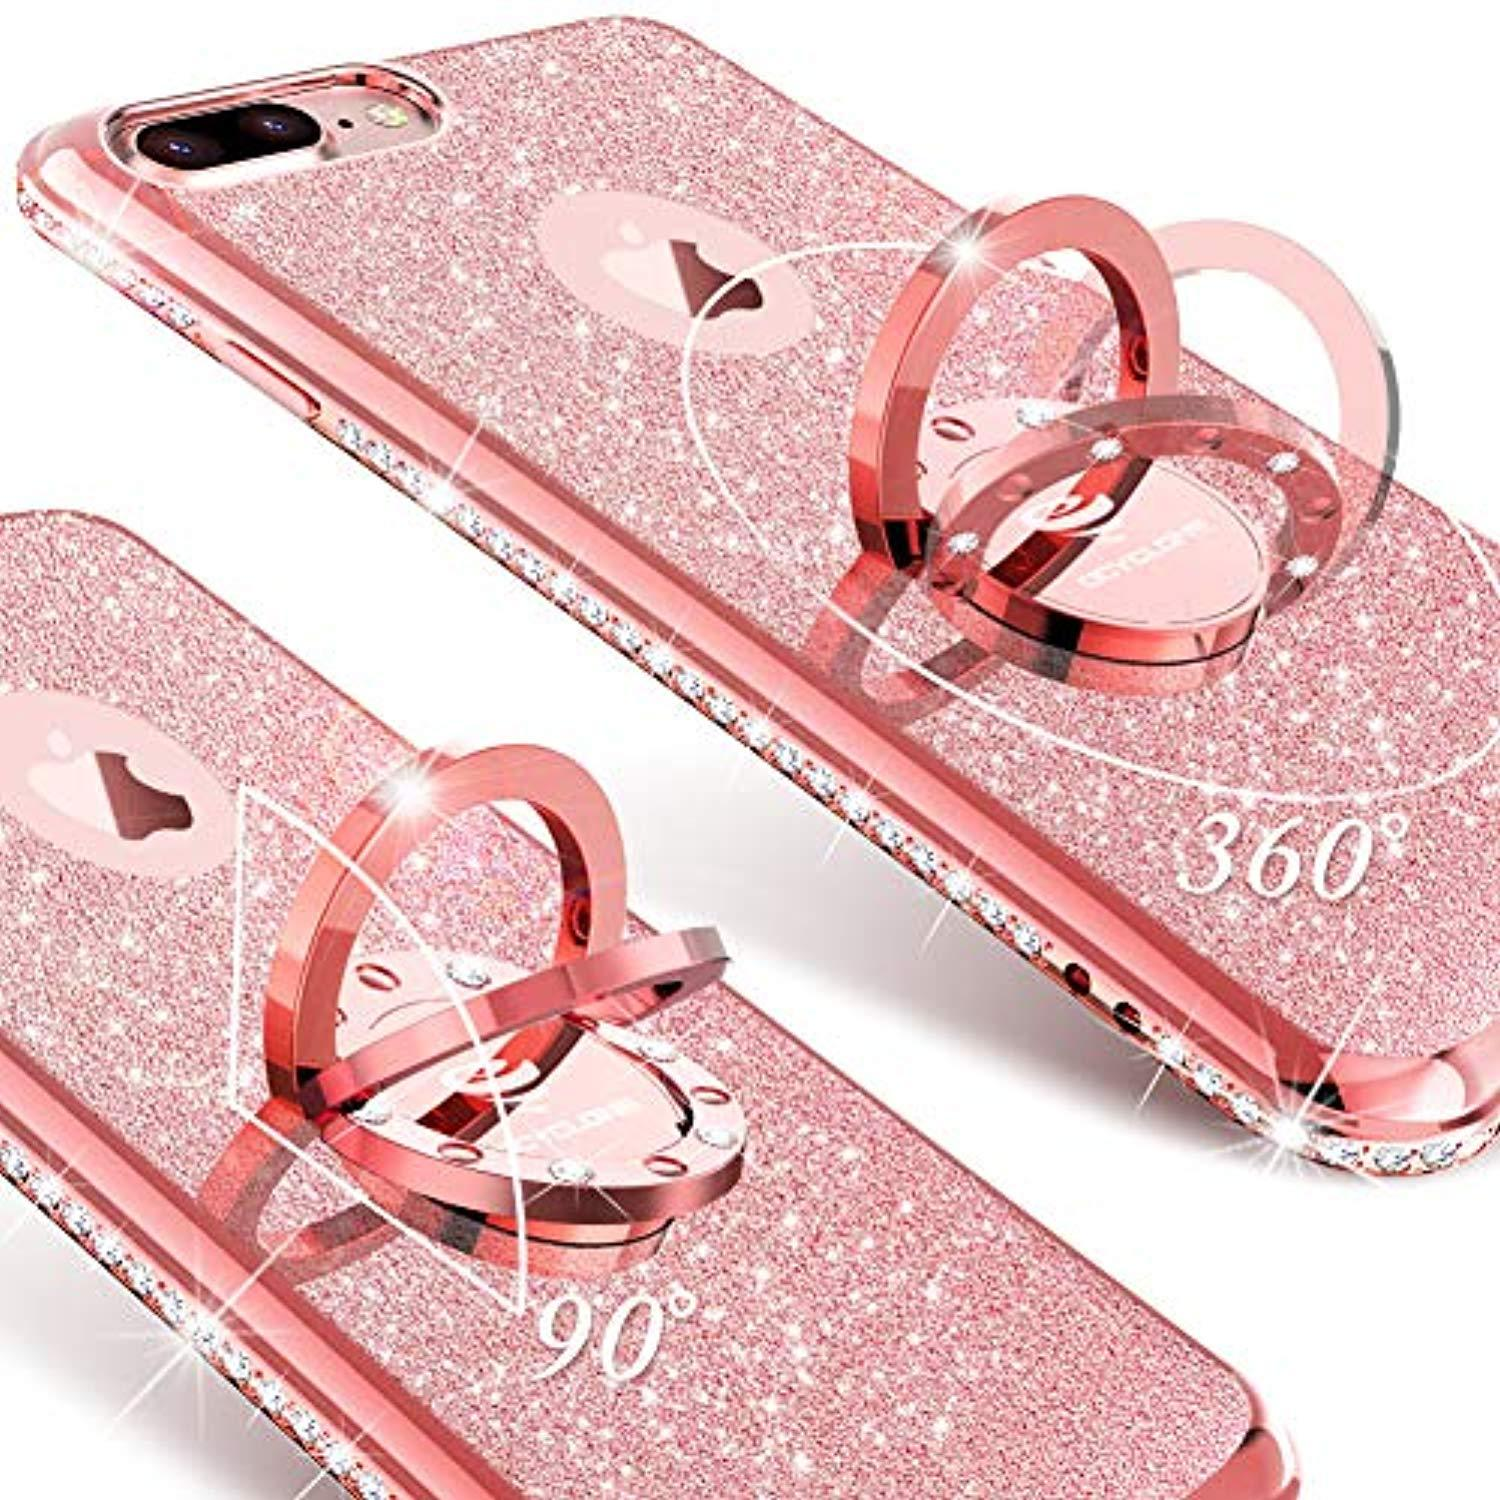 official photos b8494 67692 OCYCLONE iPhone 8 Plus Case, iPhone 7 Plus Case for Girl Women, Glitter  Cute Girly Diamond Rhinestone Bumper with Ring Kickstand Protective Phone  Case ...